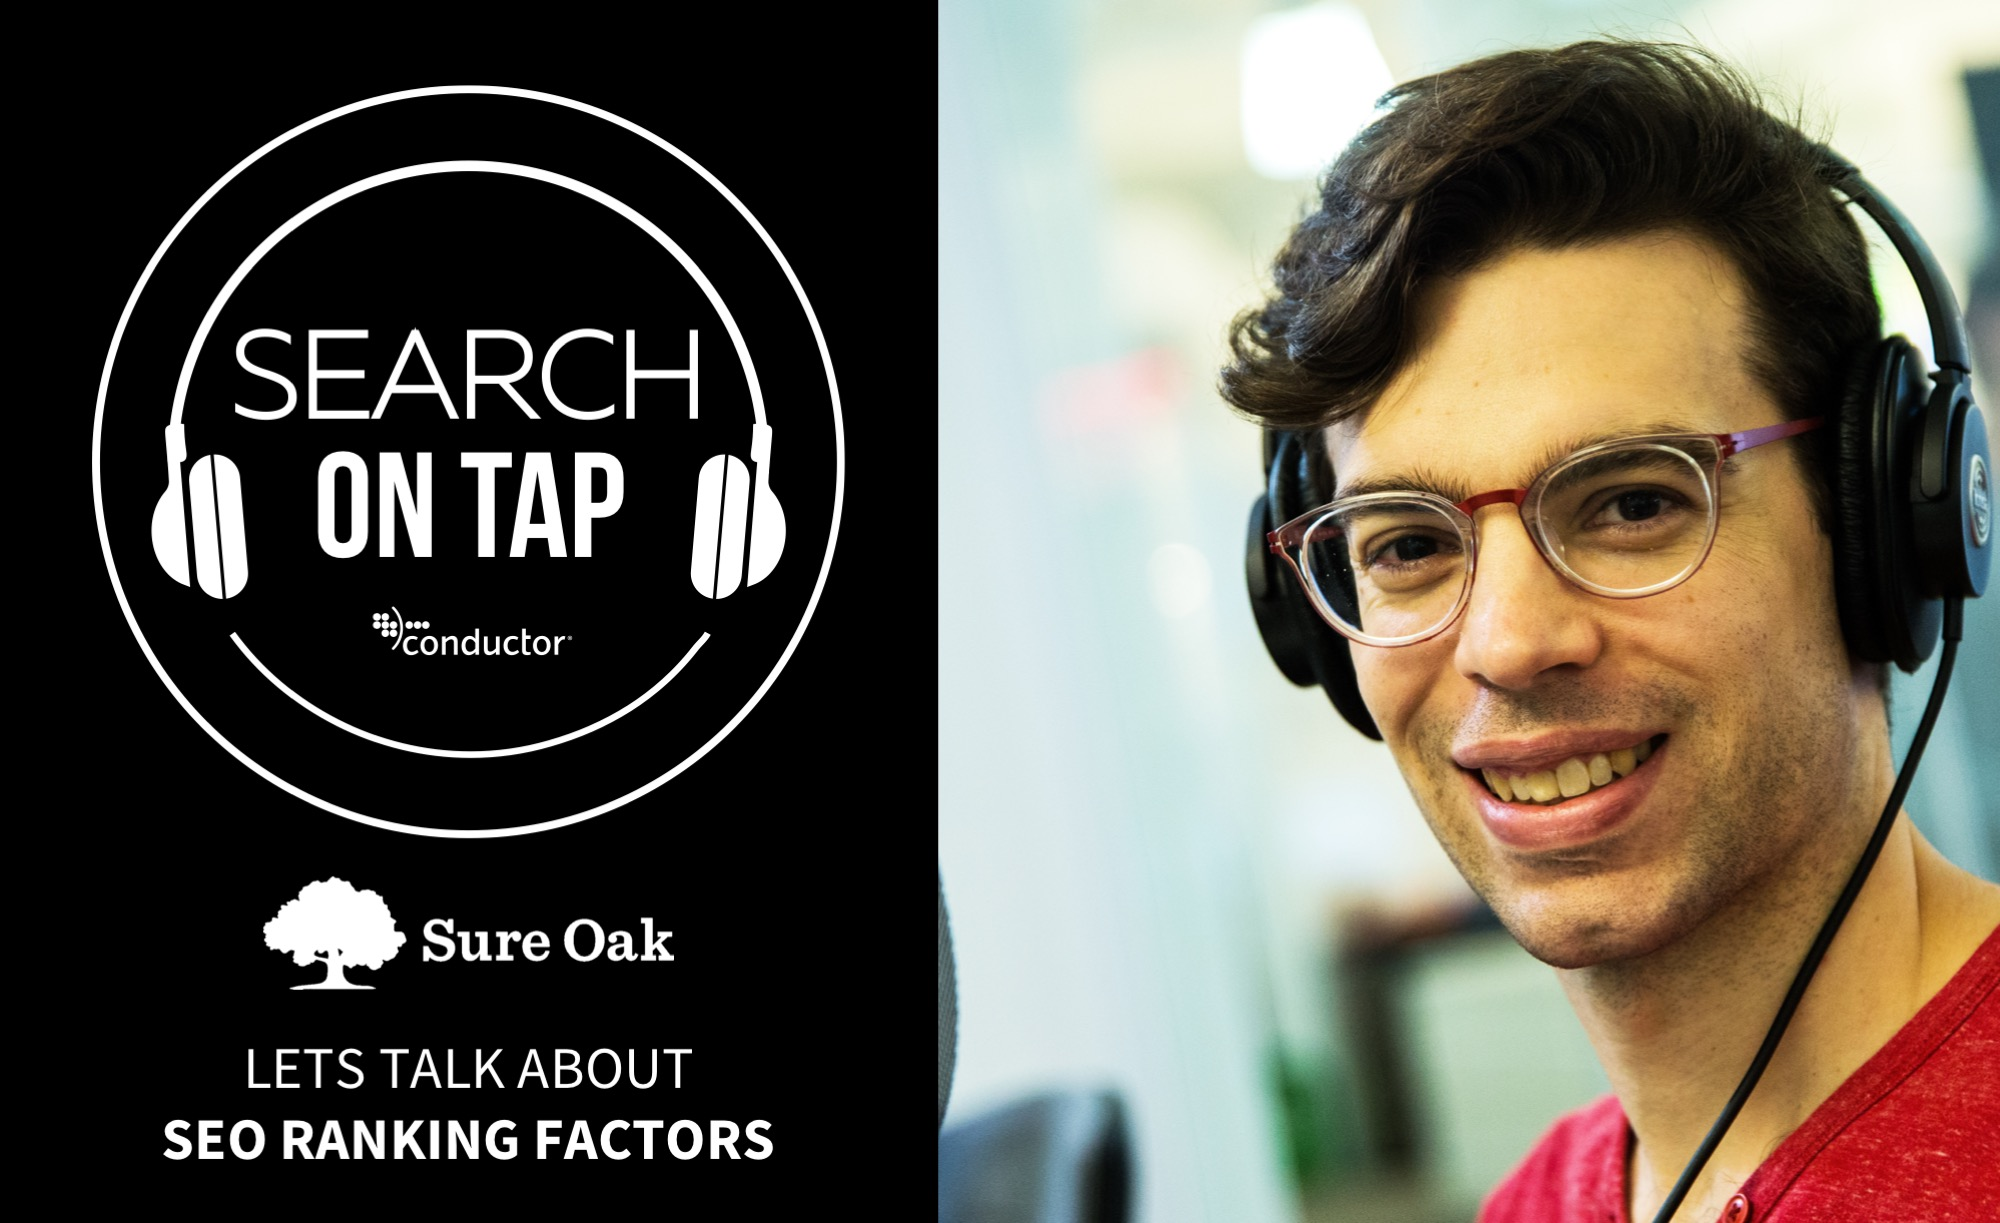 Tom Casano join Search On Tap